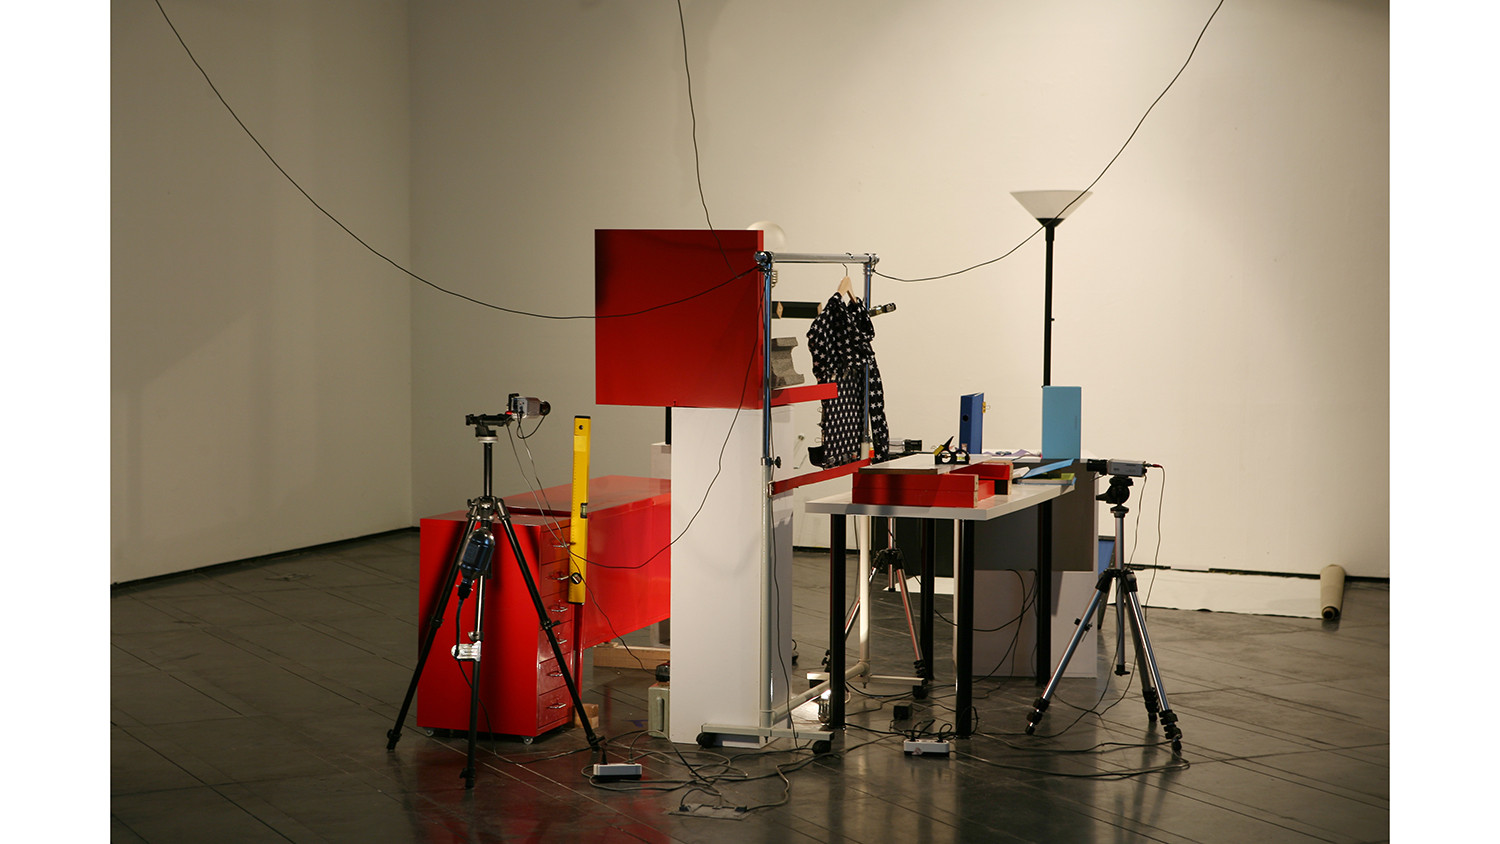 Installation view of Red Cabinet, Gallery Loop, 2011